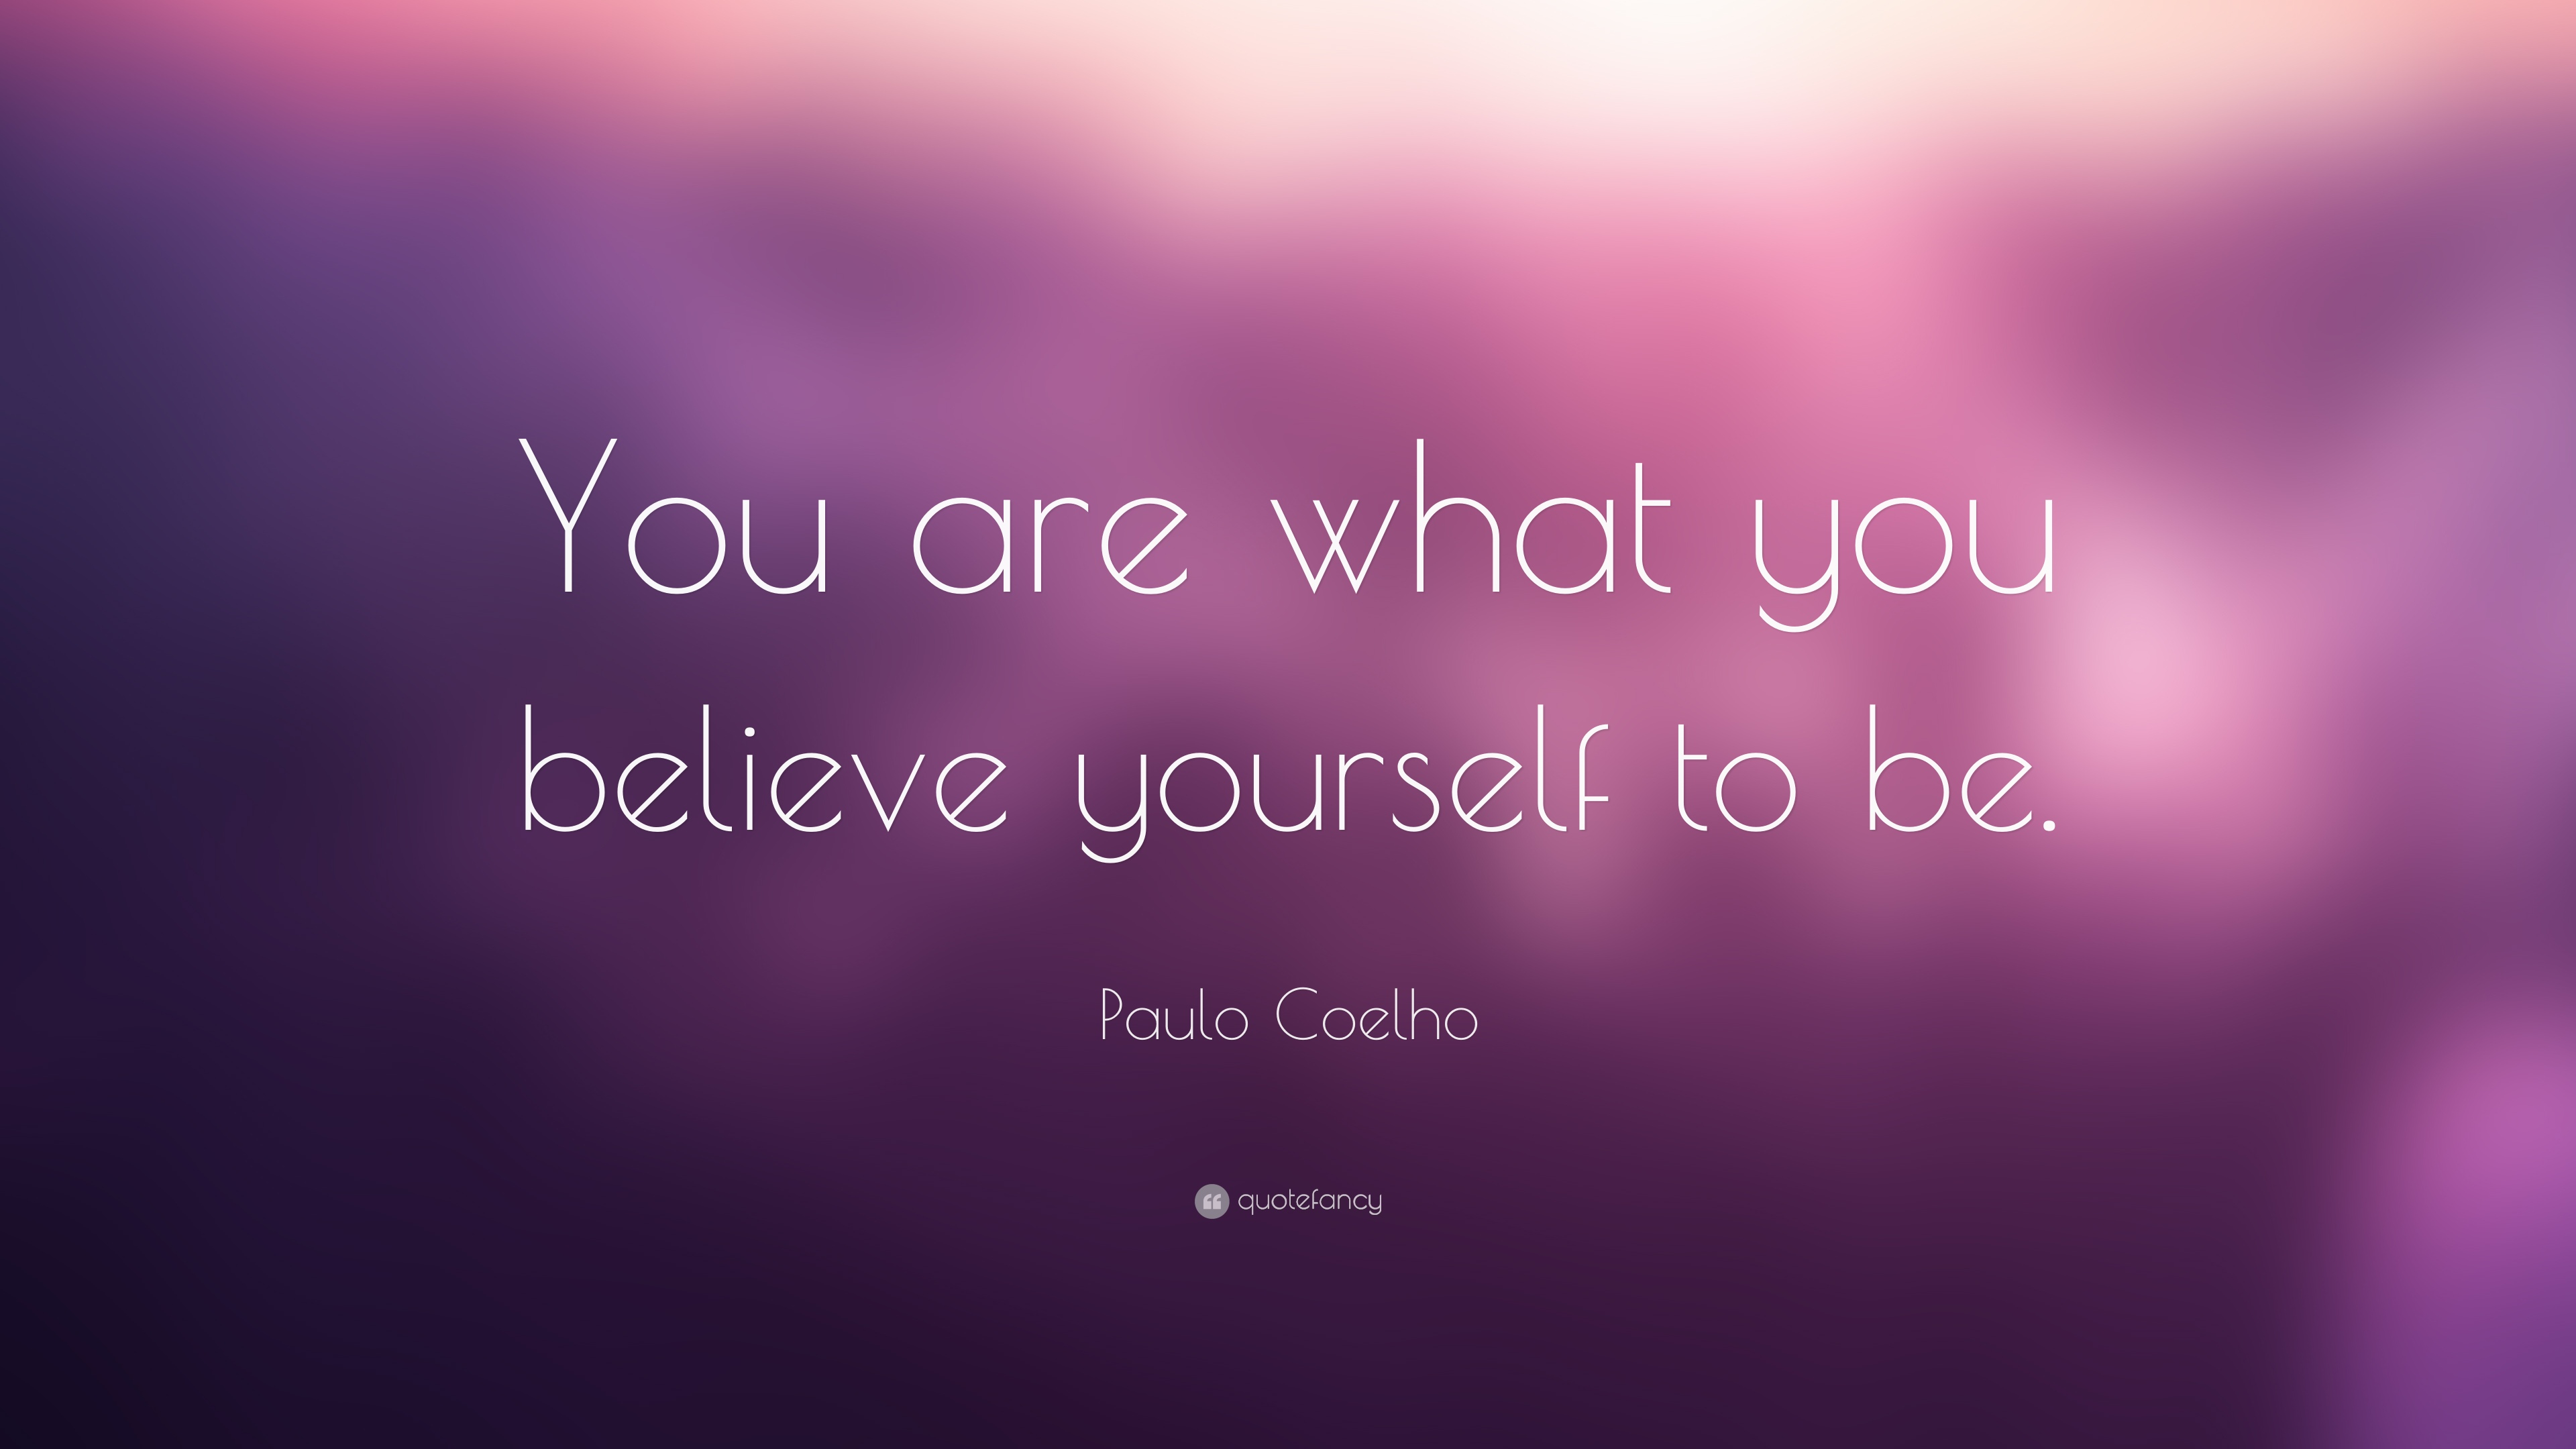 paulo coelho quote   u201cyou are what you believe yourself to be  u201d  7 wallpapers